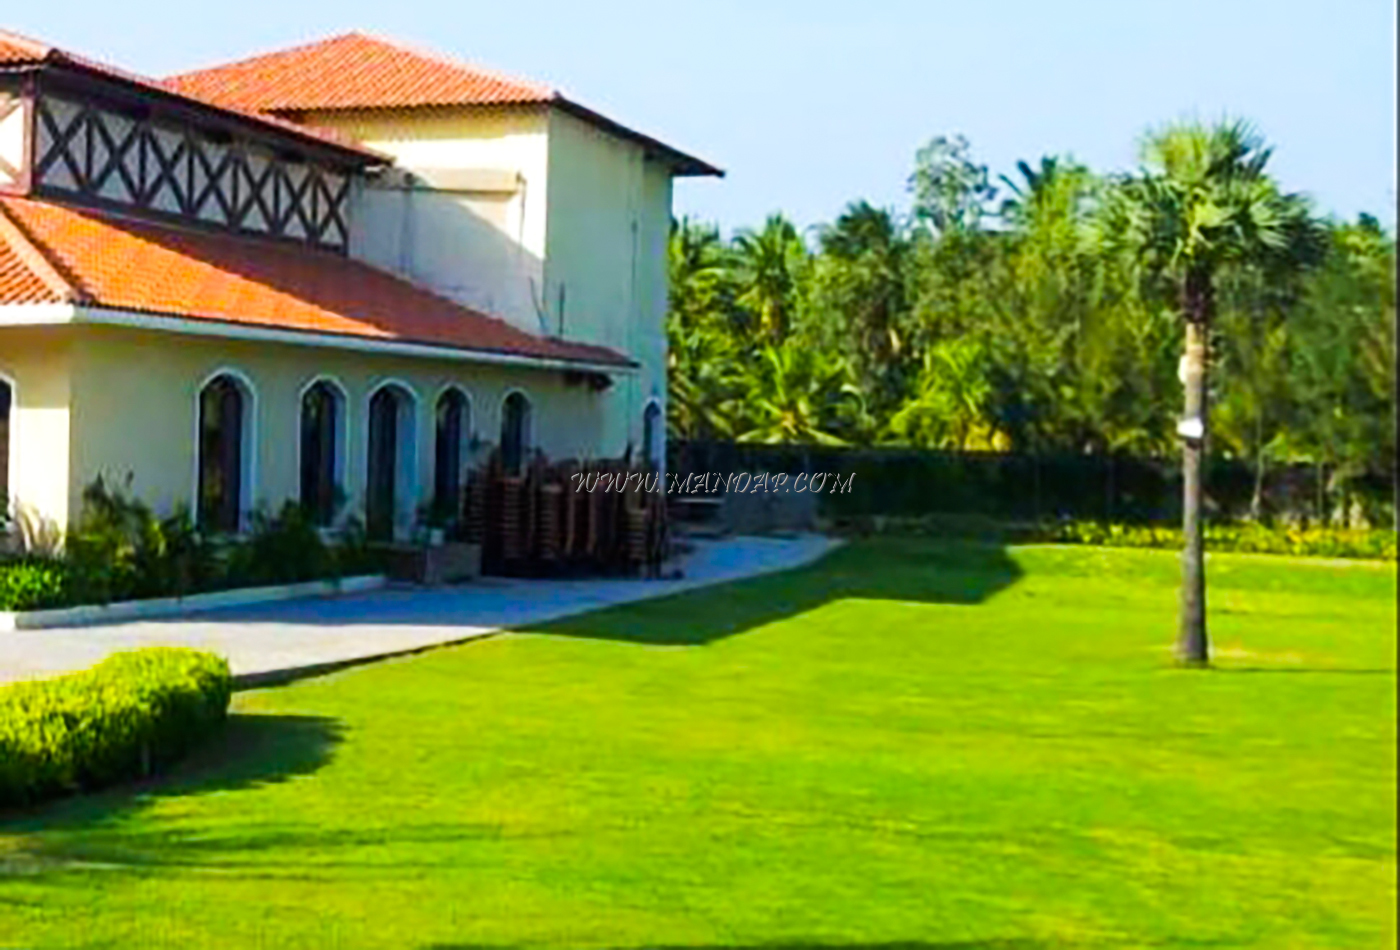 Find the availability of the Ocean Spray Lorls Lawan in White Town, Pondicherry and avail special offers